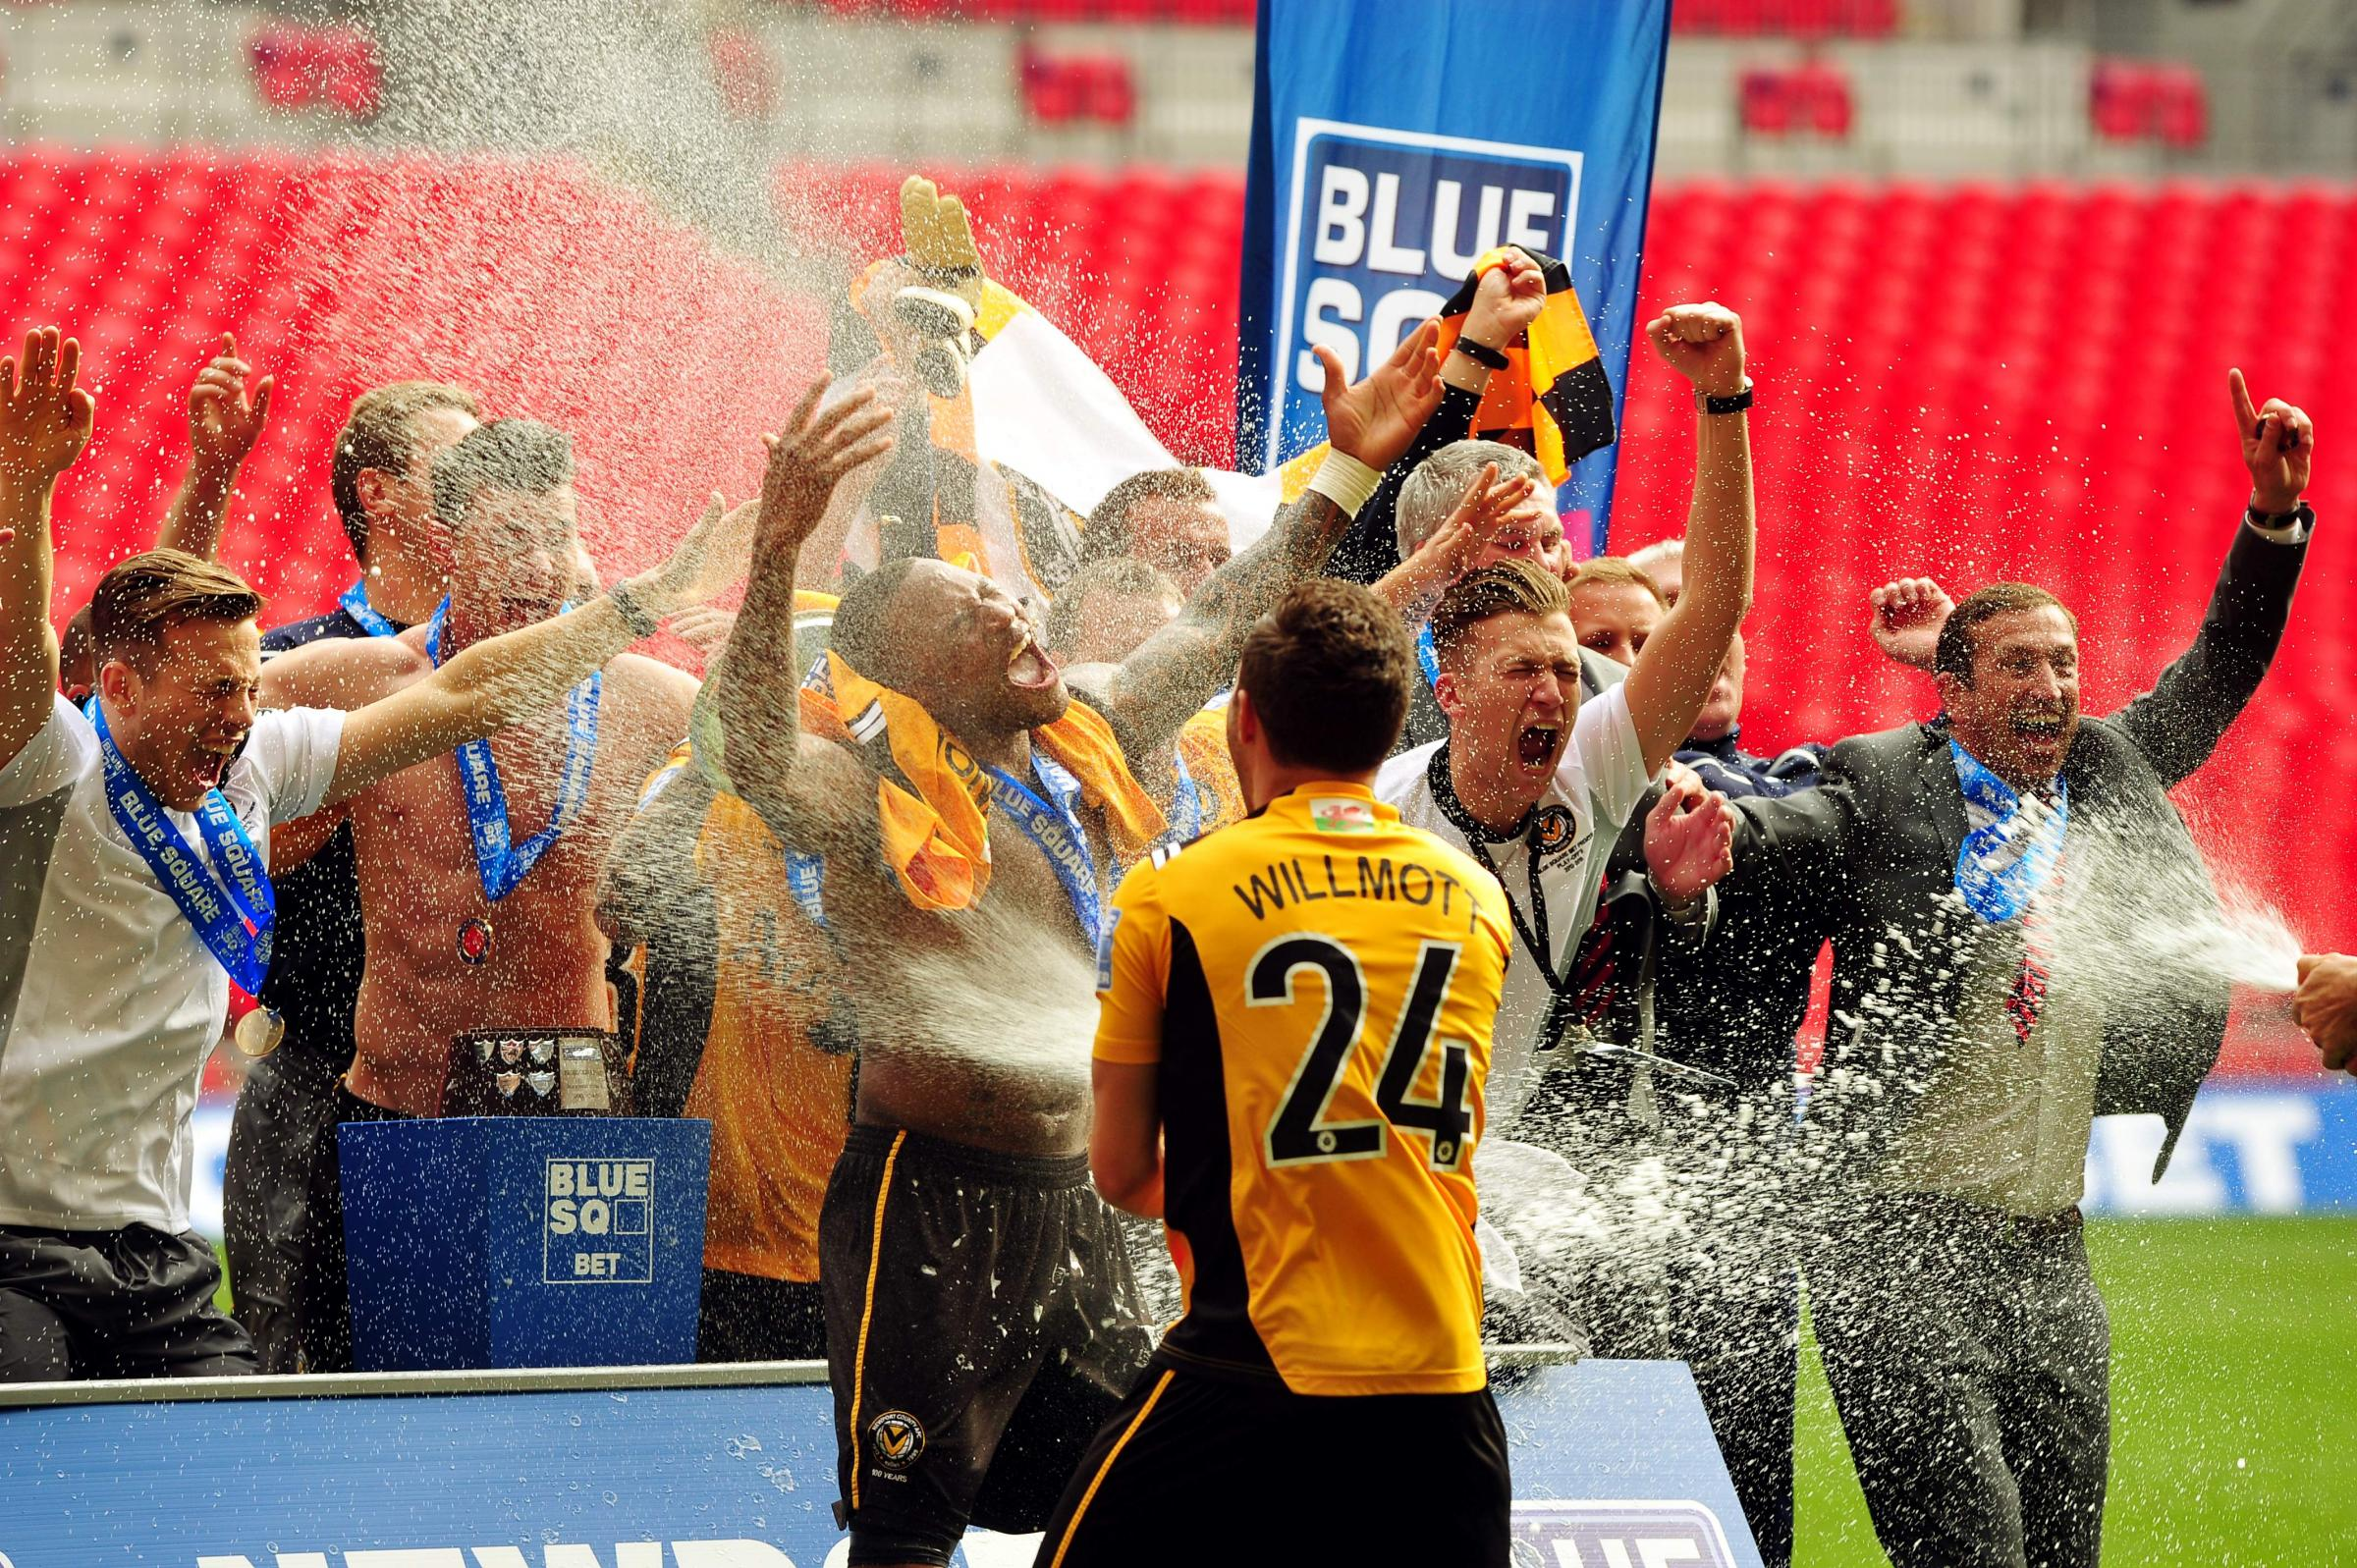 FLASHBACK: Robbie Willmott and Newport County celebrate promotion in 2013 after beating Wrexham at Wembley